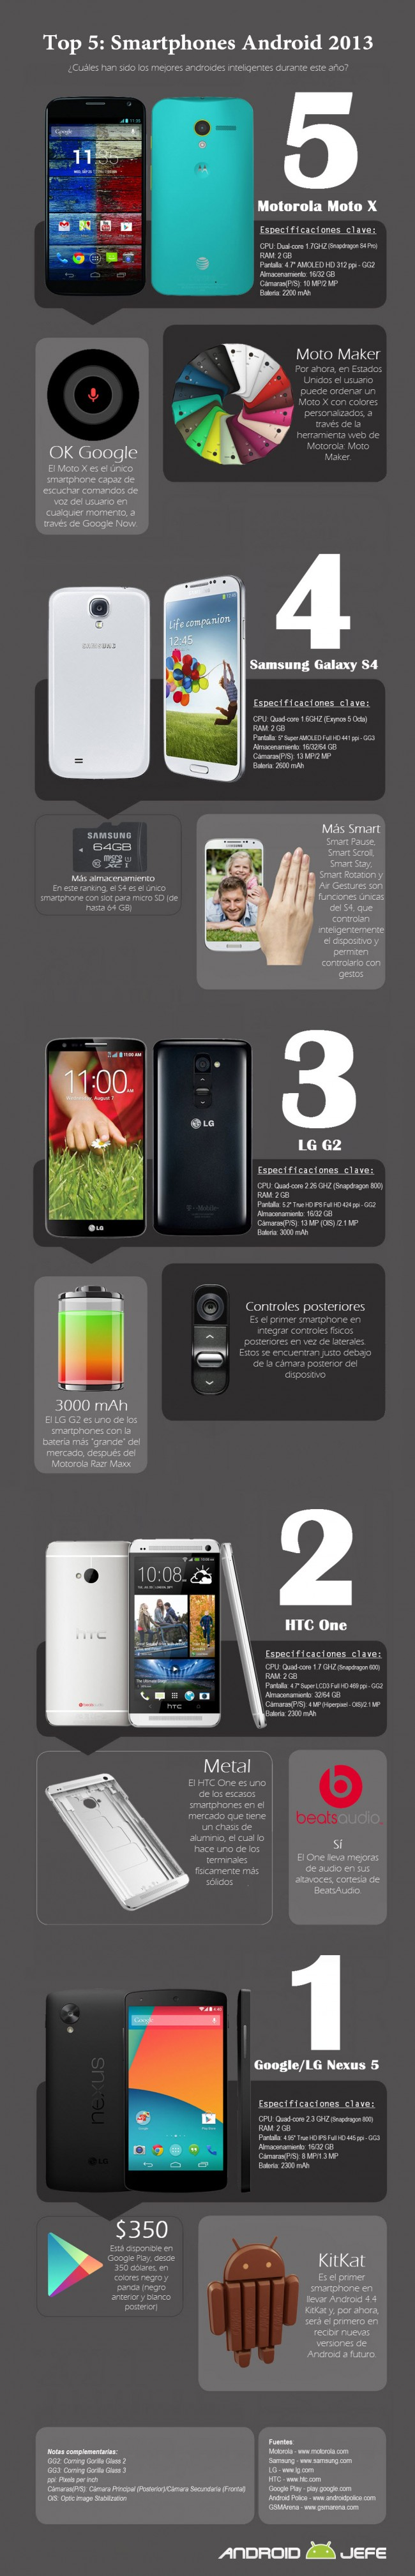 Top 5 Smartphones Android 2013